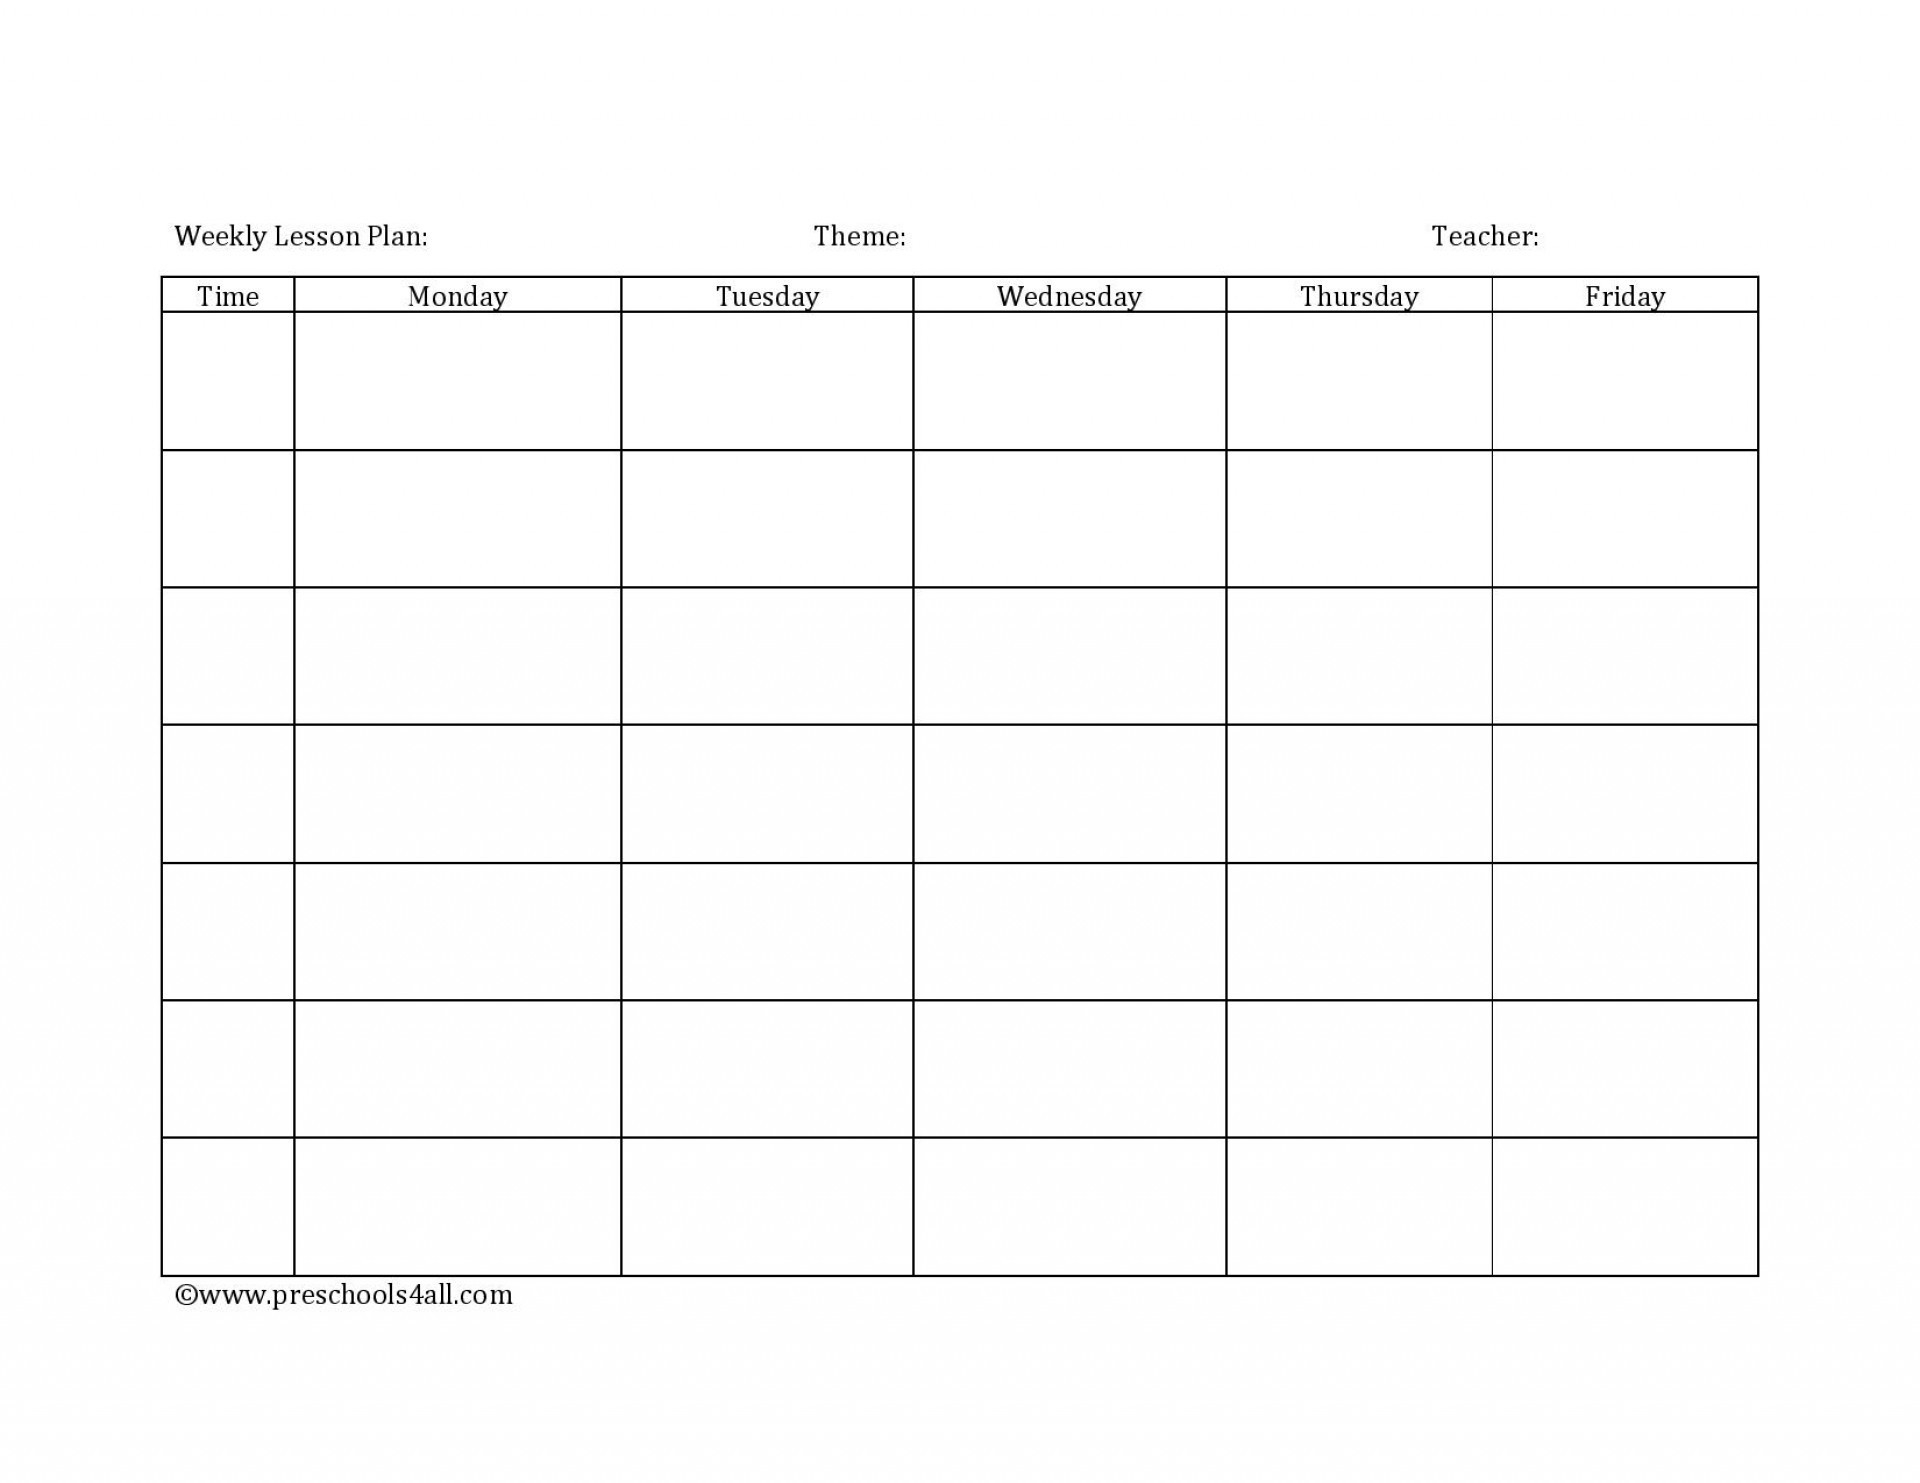 015 Weekly Lesson Plan Template Exceptional Ideas Daycare-Daycare Weekly Lesson Plan Template